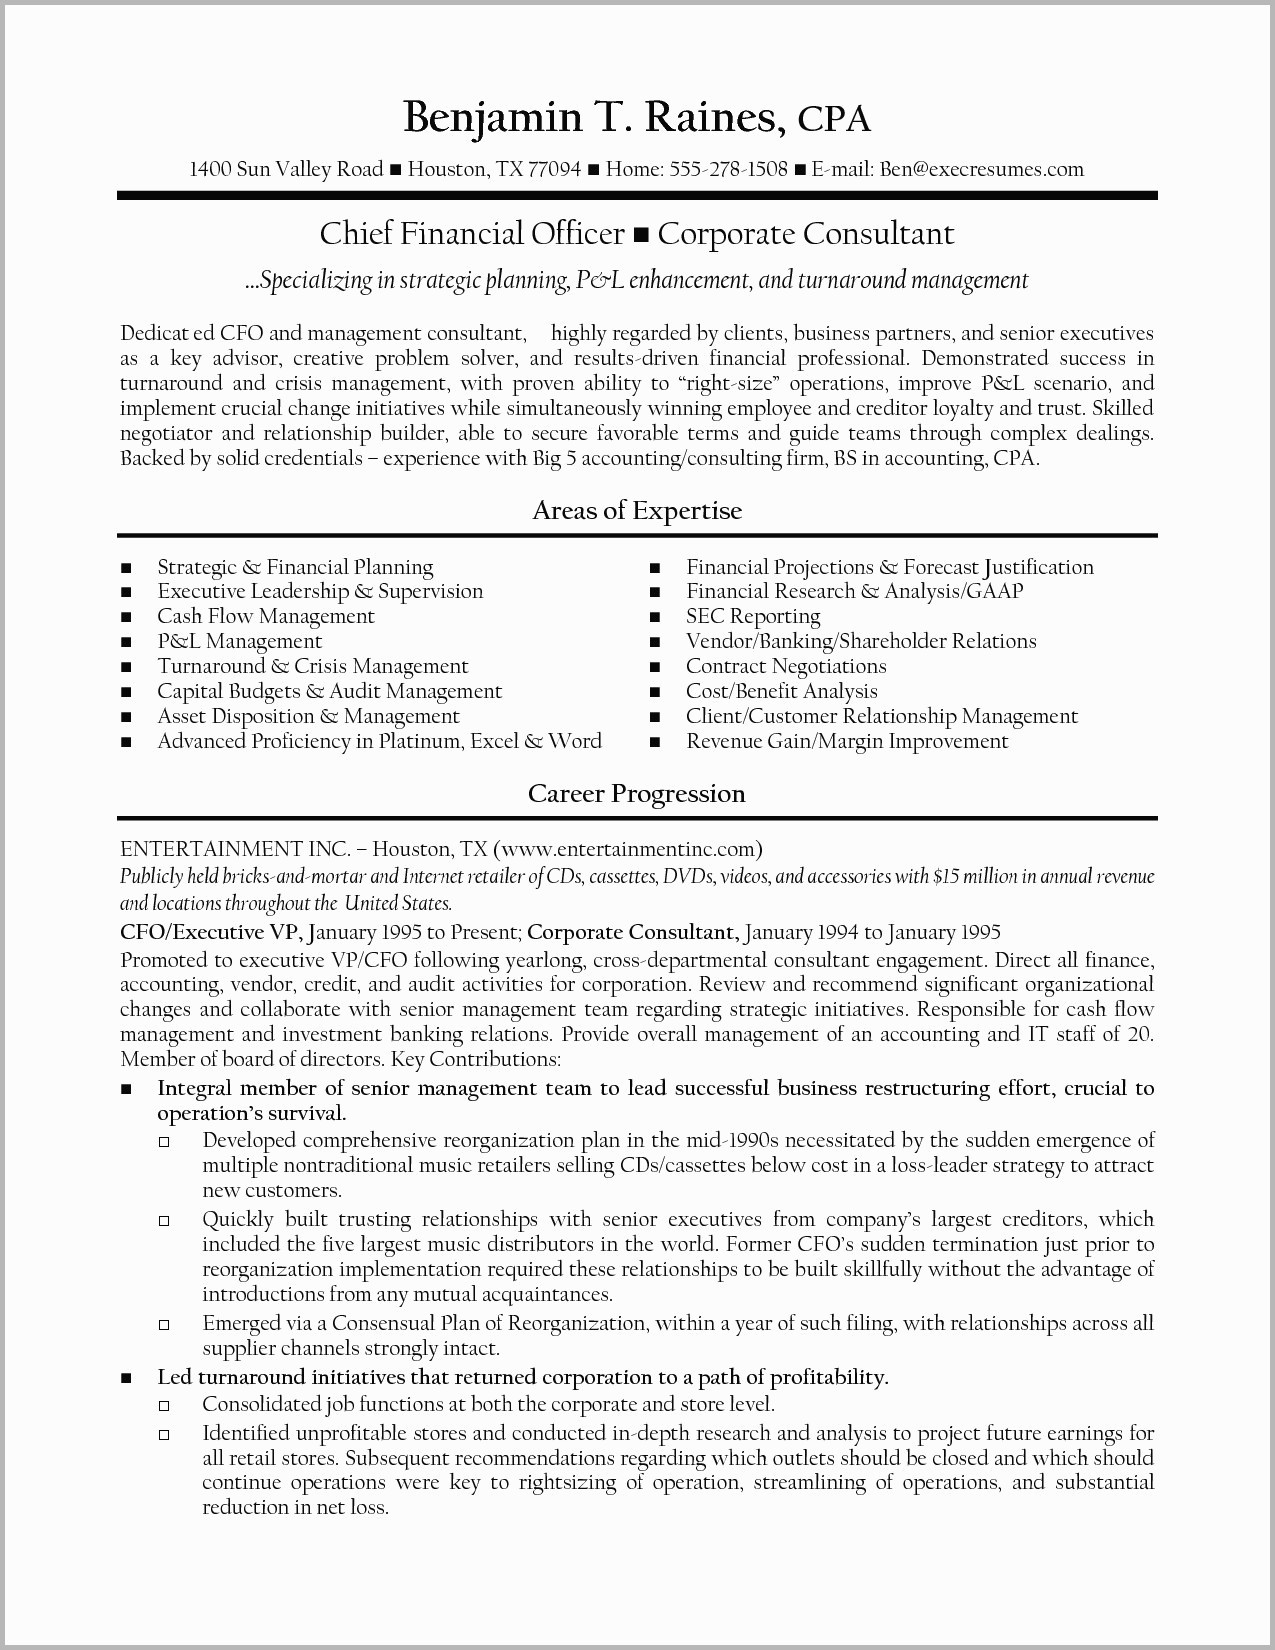 chief financial officer resume template Collection-Finance Manager Resume Save Finance Director Resume Examples Cfo Resume Template Inspirational 14-k